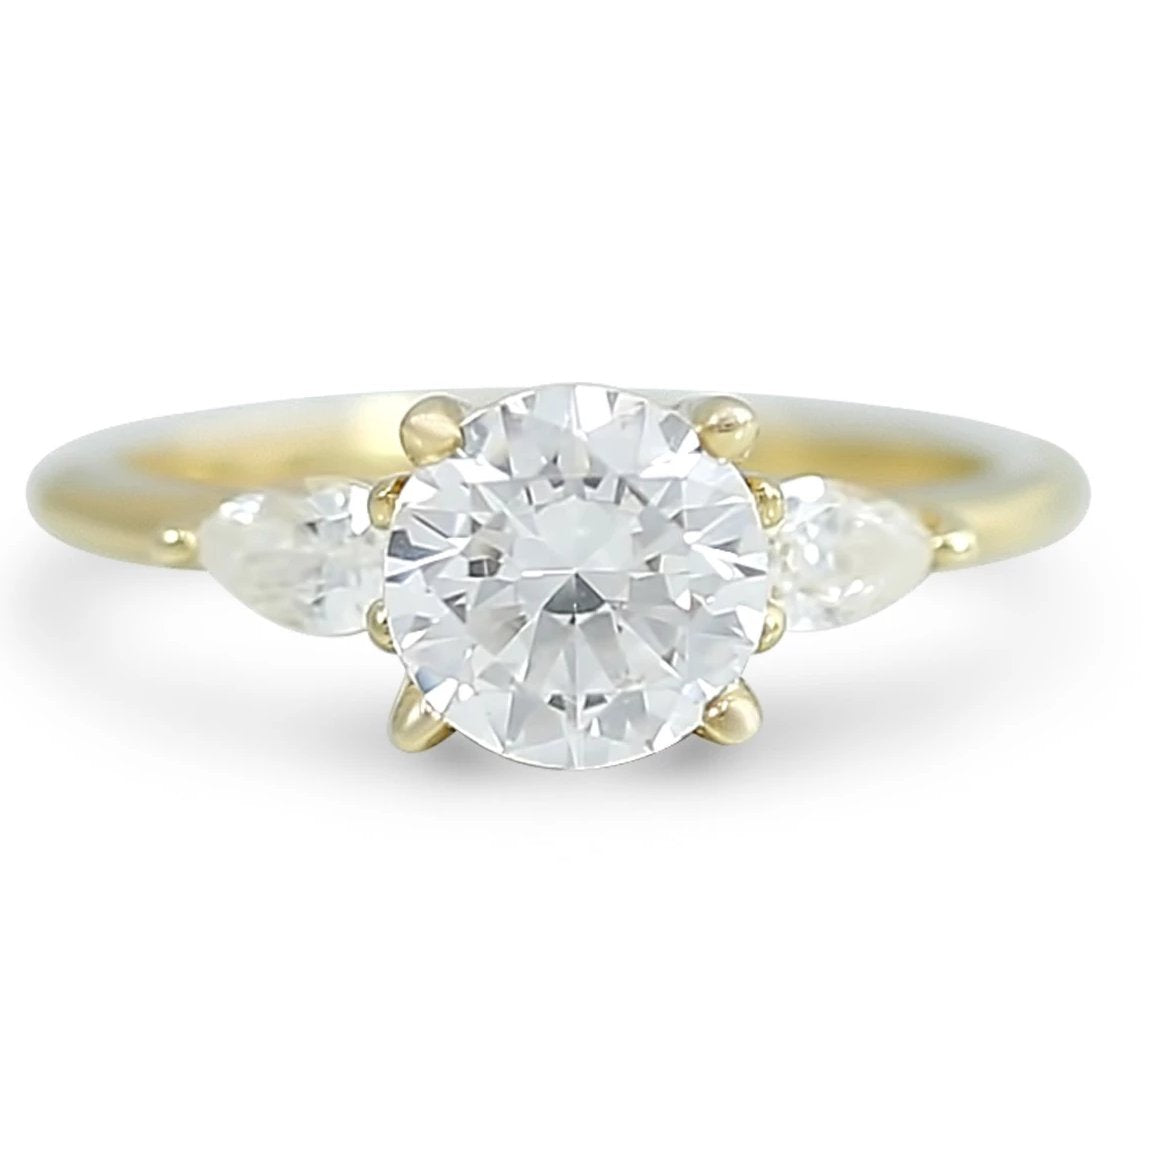 three stone ready to buy diamond engagement ring with pear shaped side stones prong set and available in 14k yellow, white, rose, or peach gold and platinum